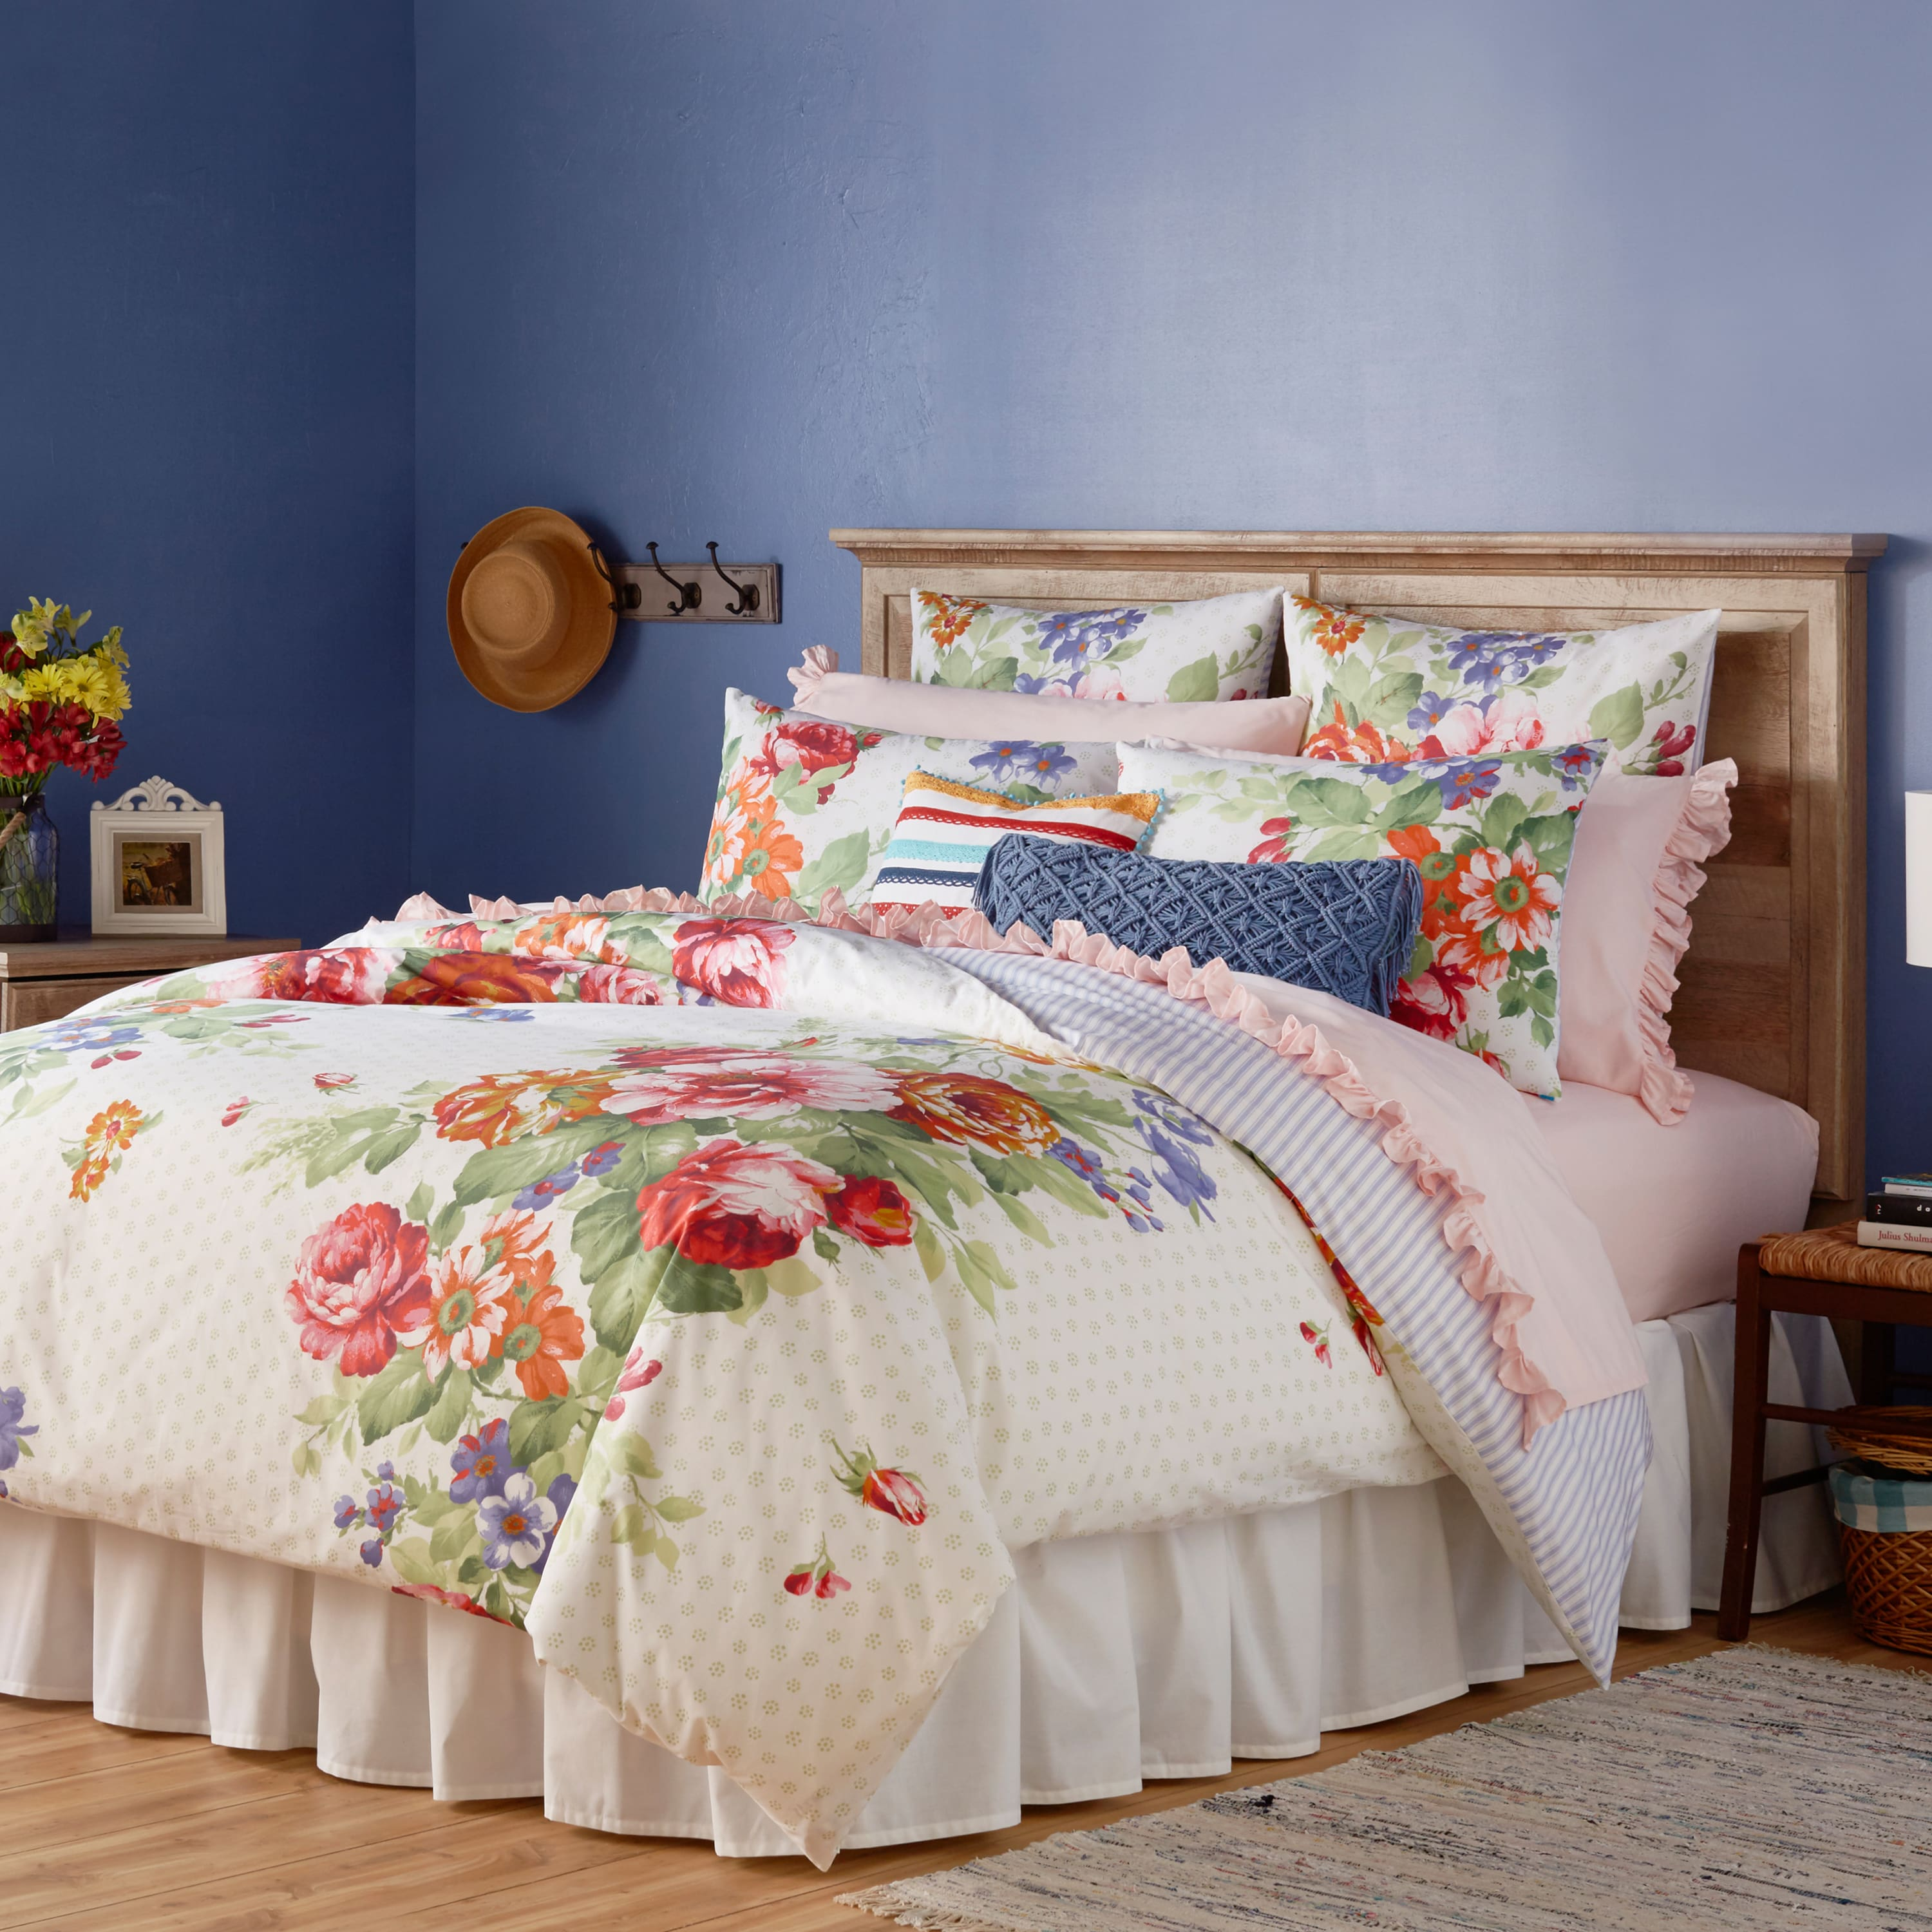 100% Cotton duvet cover, Queen-size, floral pattern, and stripes on reverse